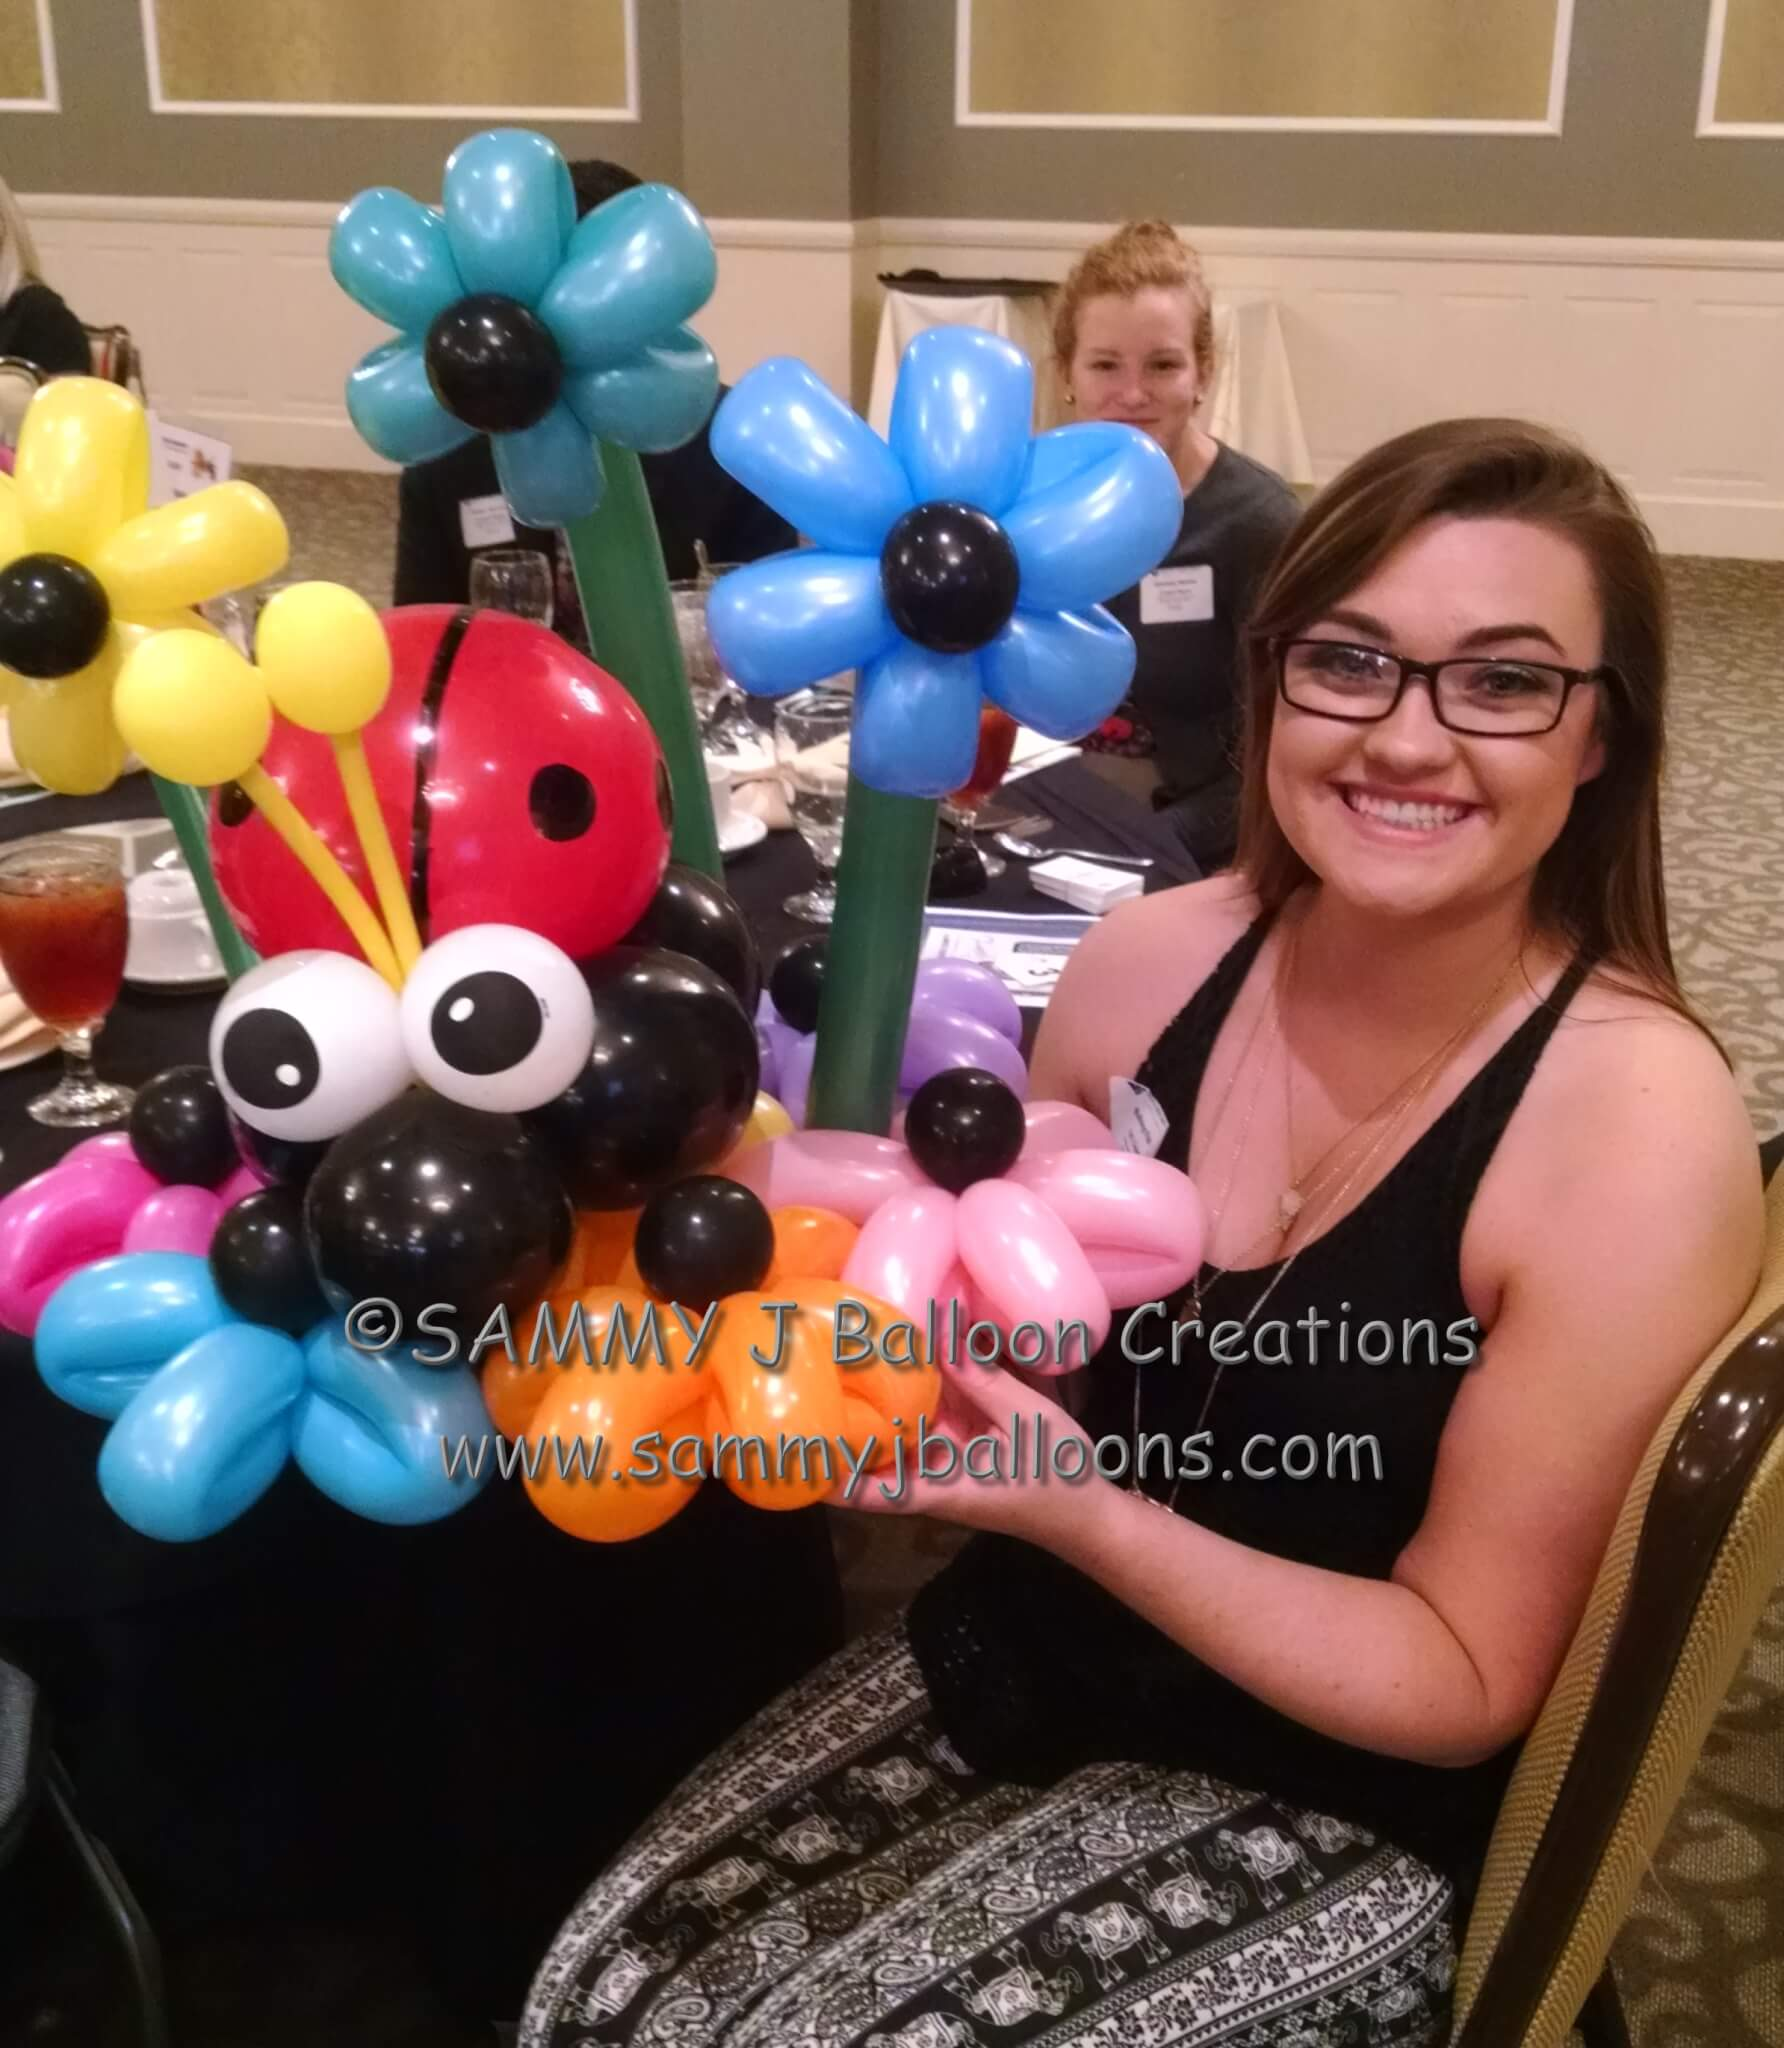 SAMMY J Balloon Creations st louis balloons ladybug flower bouquet